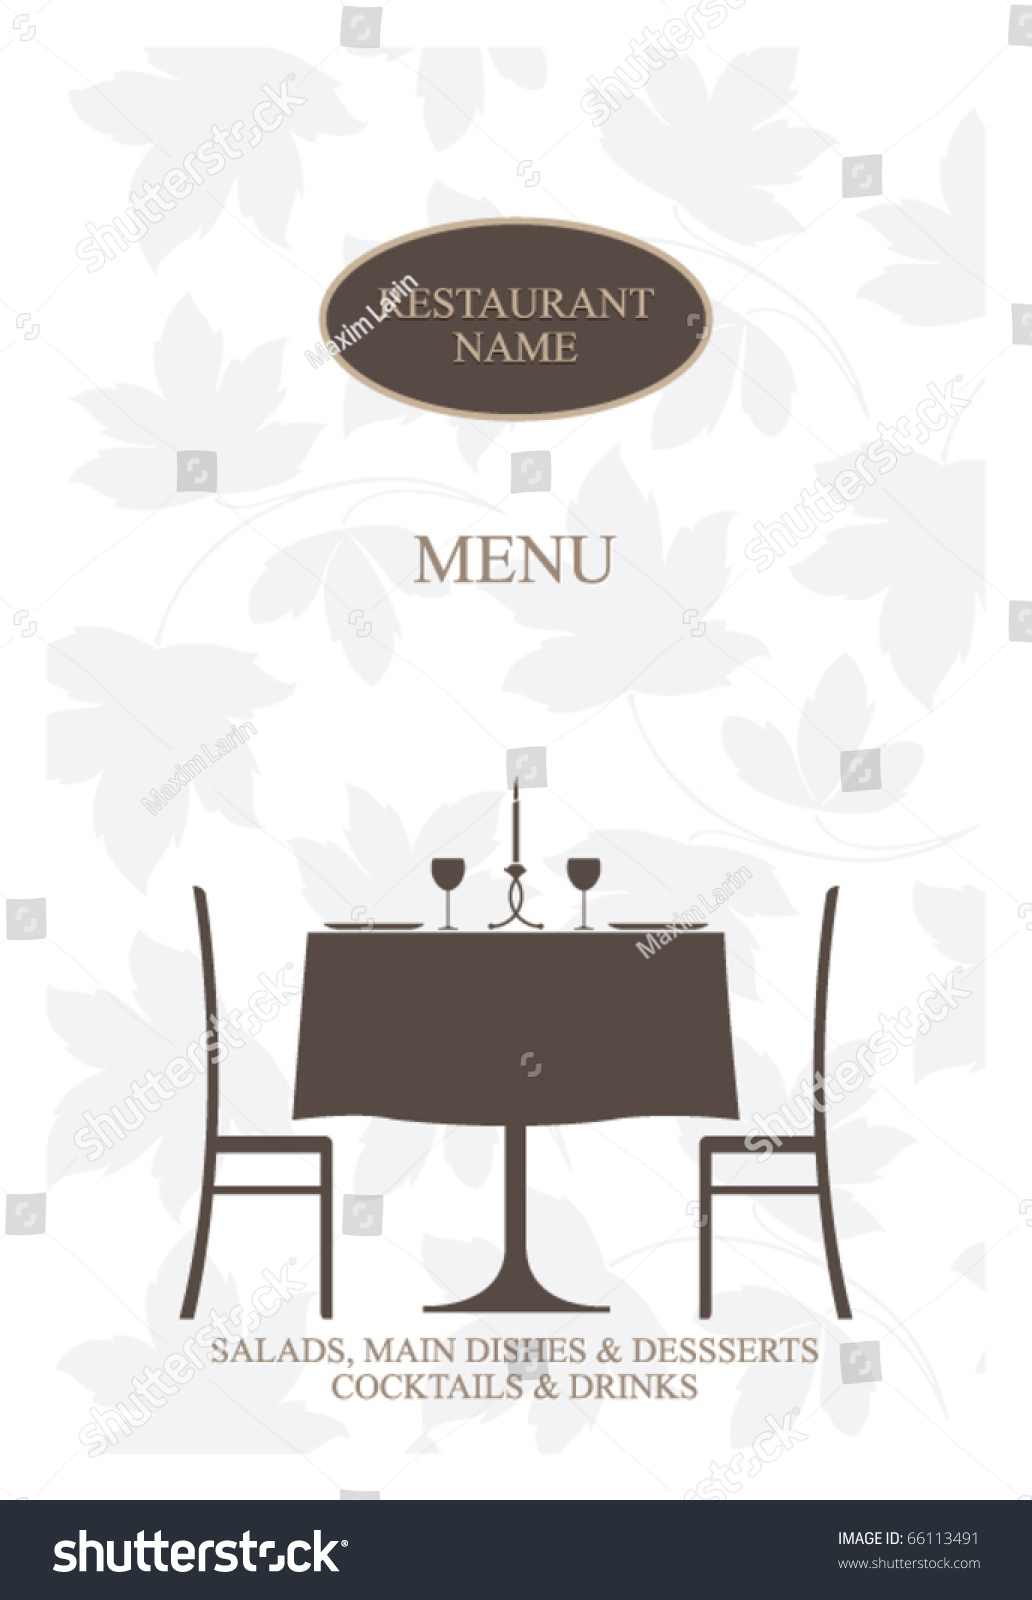 Vector restaurant menu design stock